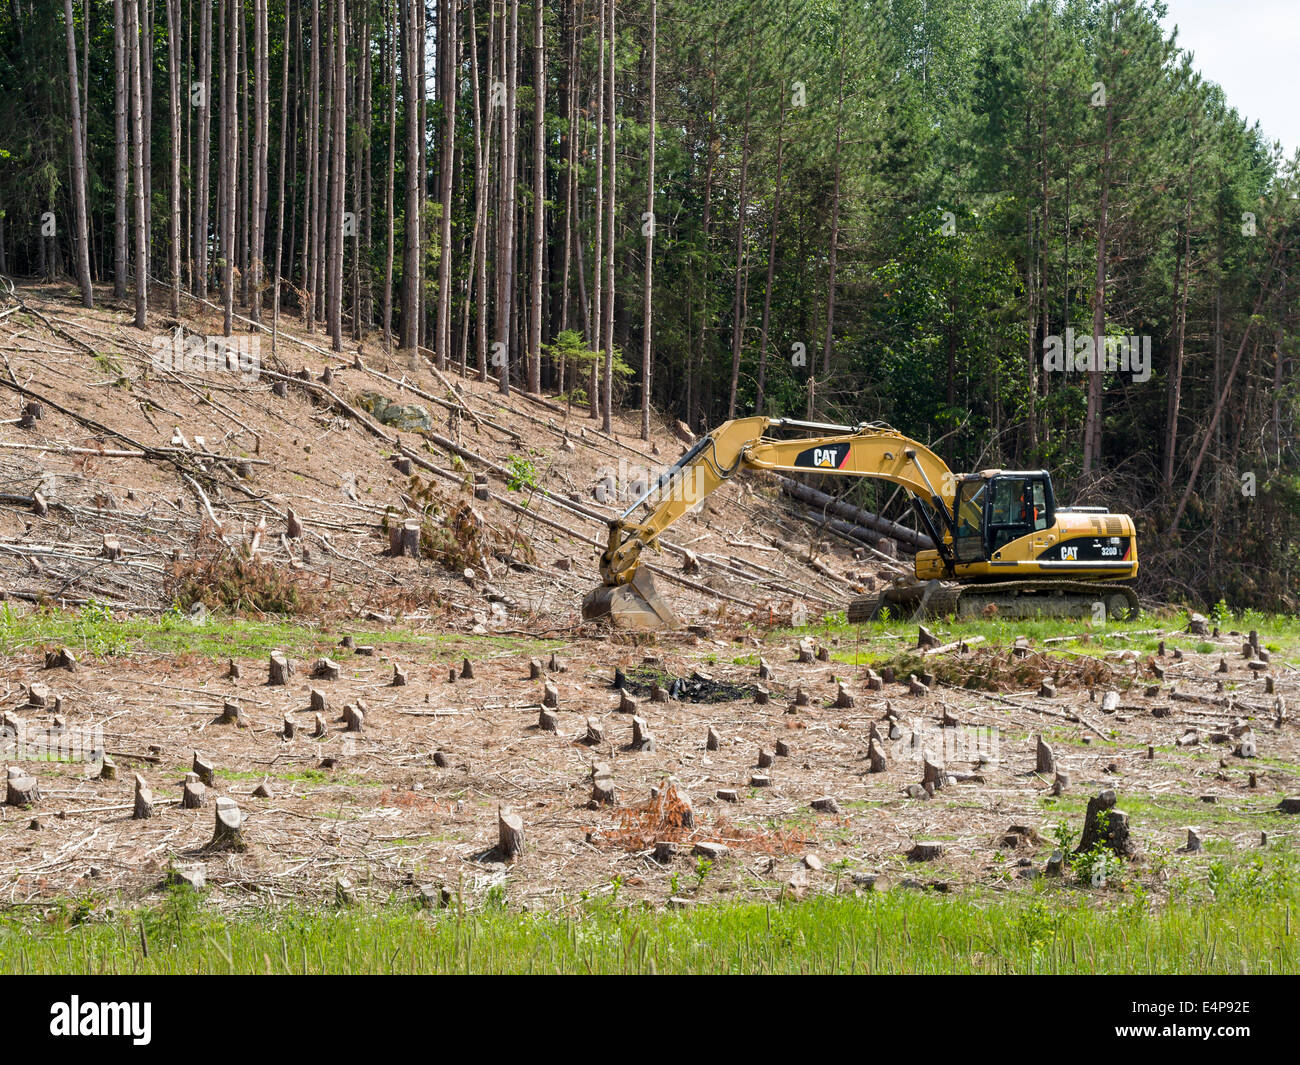 Clearcut Trees with digger. After clearing a large swath of planted forest a earth digger is in place to start digging. - Stock Image